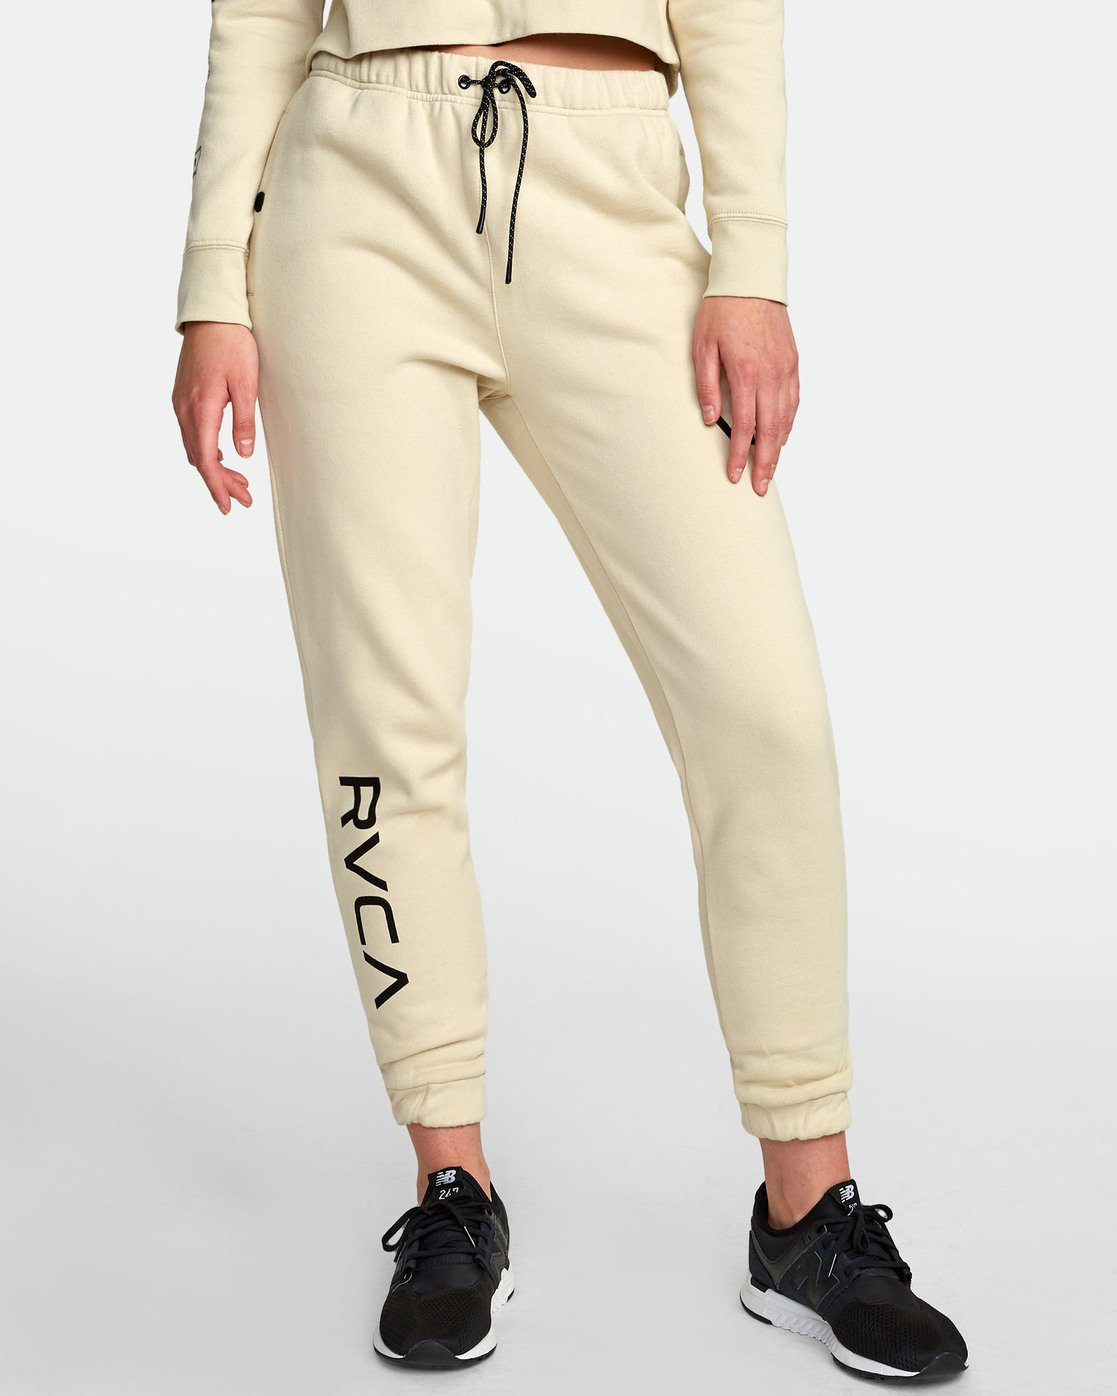 0 SPORT FLEECE SWEATPANT White T3071RSS RVCA